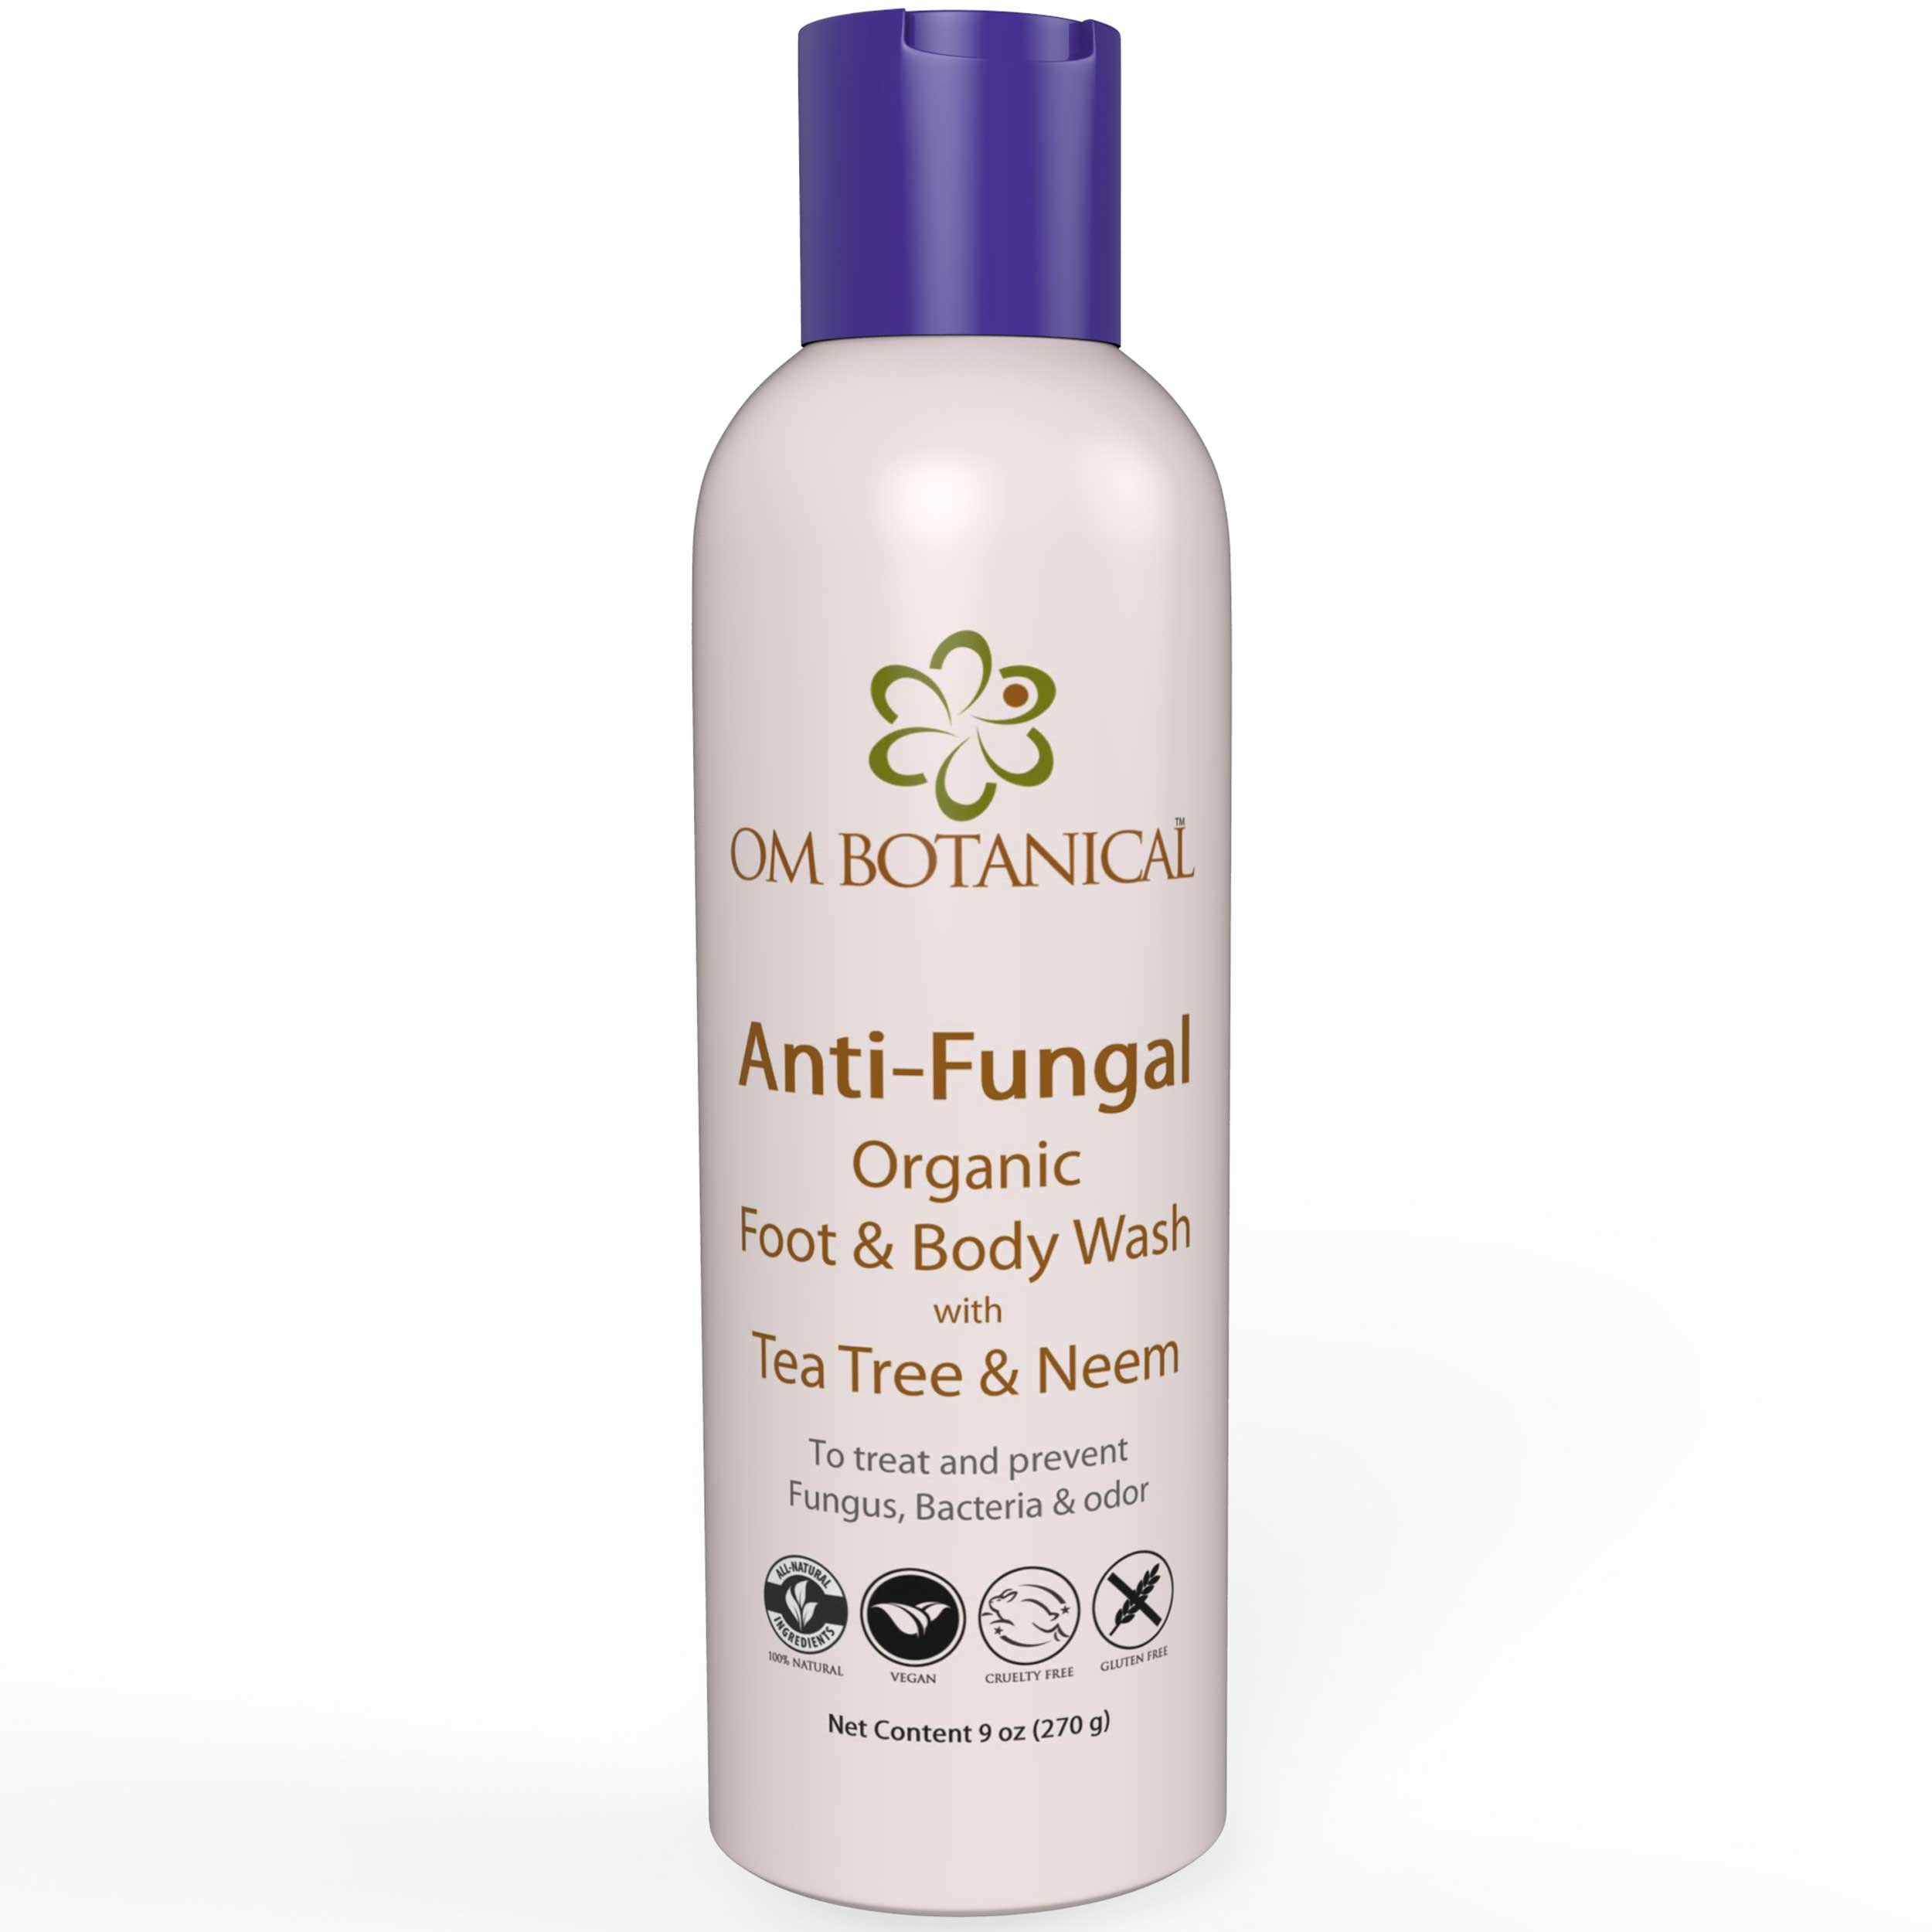 Organic ANTIFUNGAL Full Body Wash and Shampoo for Men, Women w/Neem, Tea Tree Oil. All Natural Soap For Athletes Foot, Body Odor, Nail Fungus, Jock Itch, Yeast Infection, Body Acne, Eczema Treatment